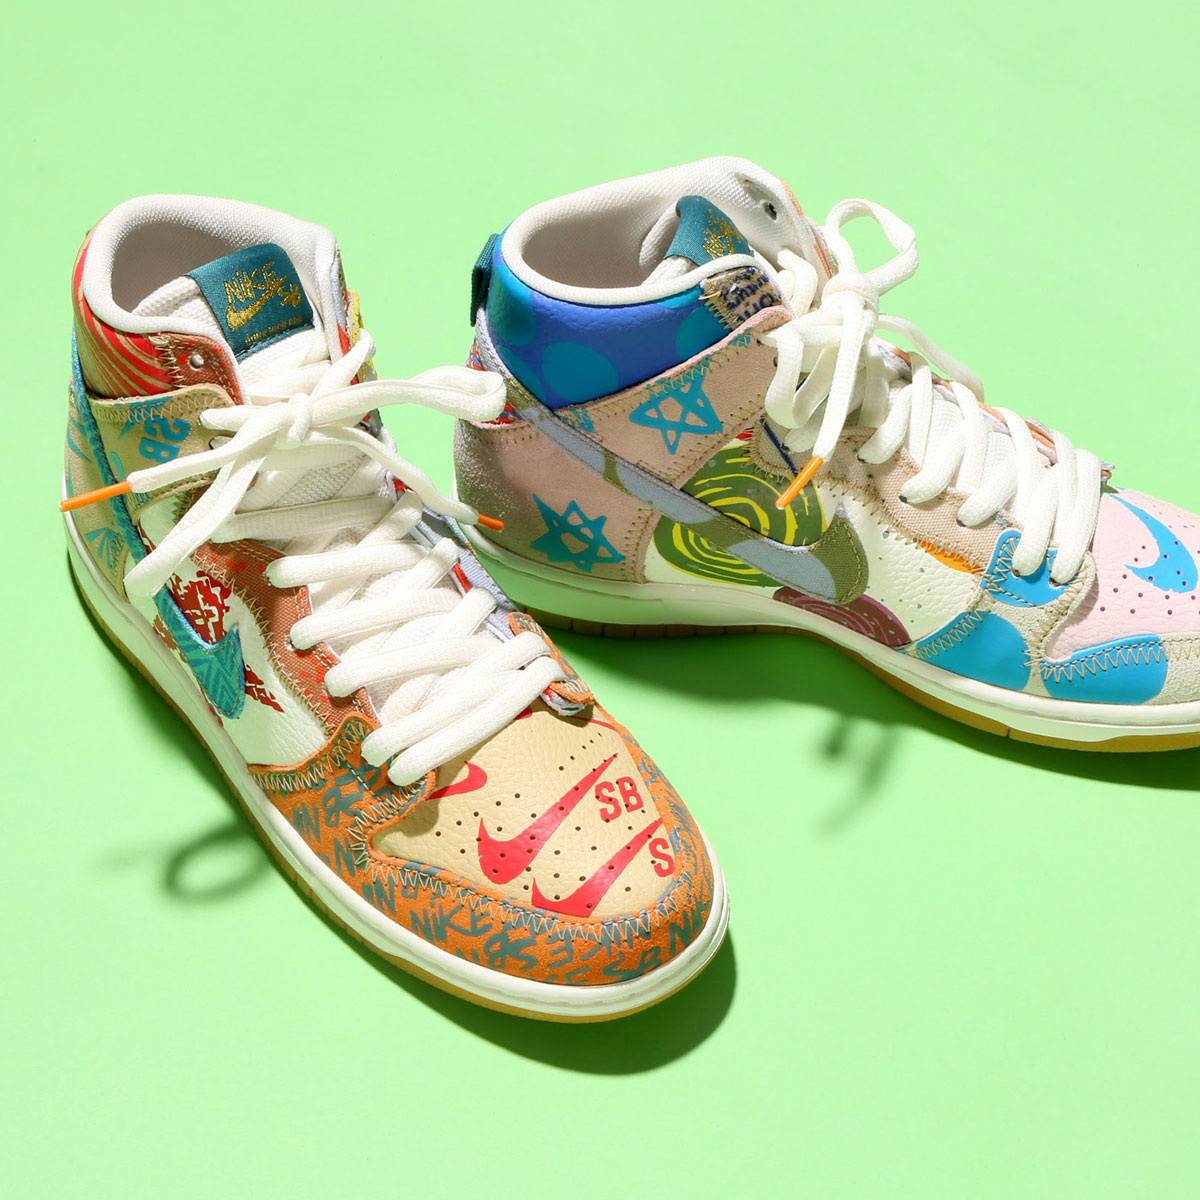 los angeles 1ab2a e17d9 The shoes which the Nike SB zoom dunk HIGH premium improved out sole to a  base in the dunk-style that was Aiko Nic of Nike, and raised a grip power  and ...